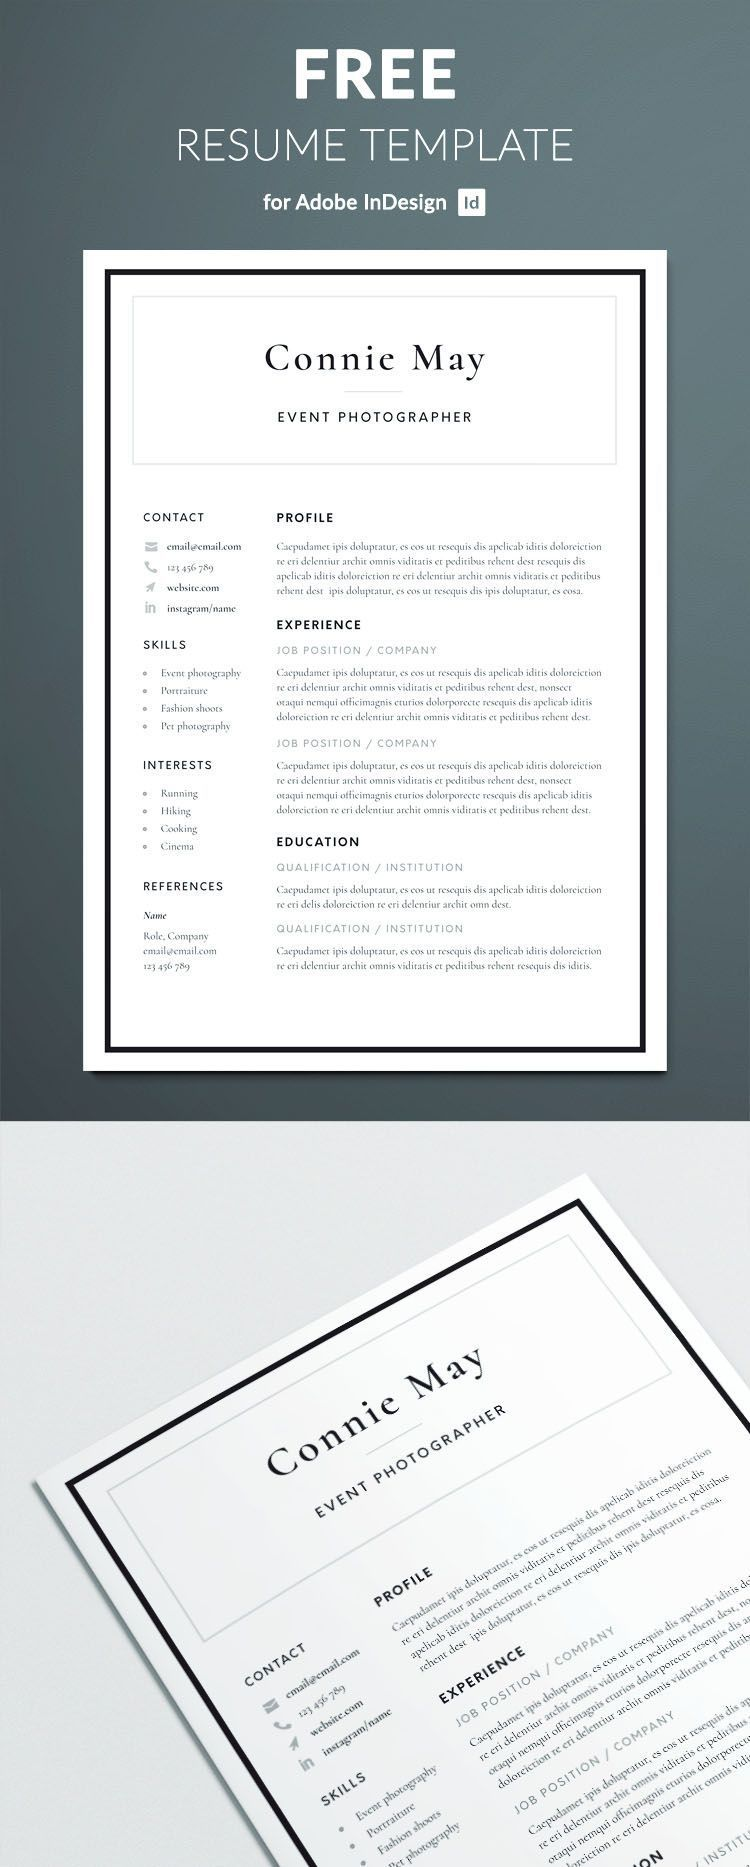 Simple Resume Template for InDesign